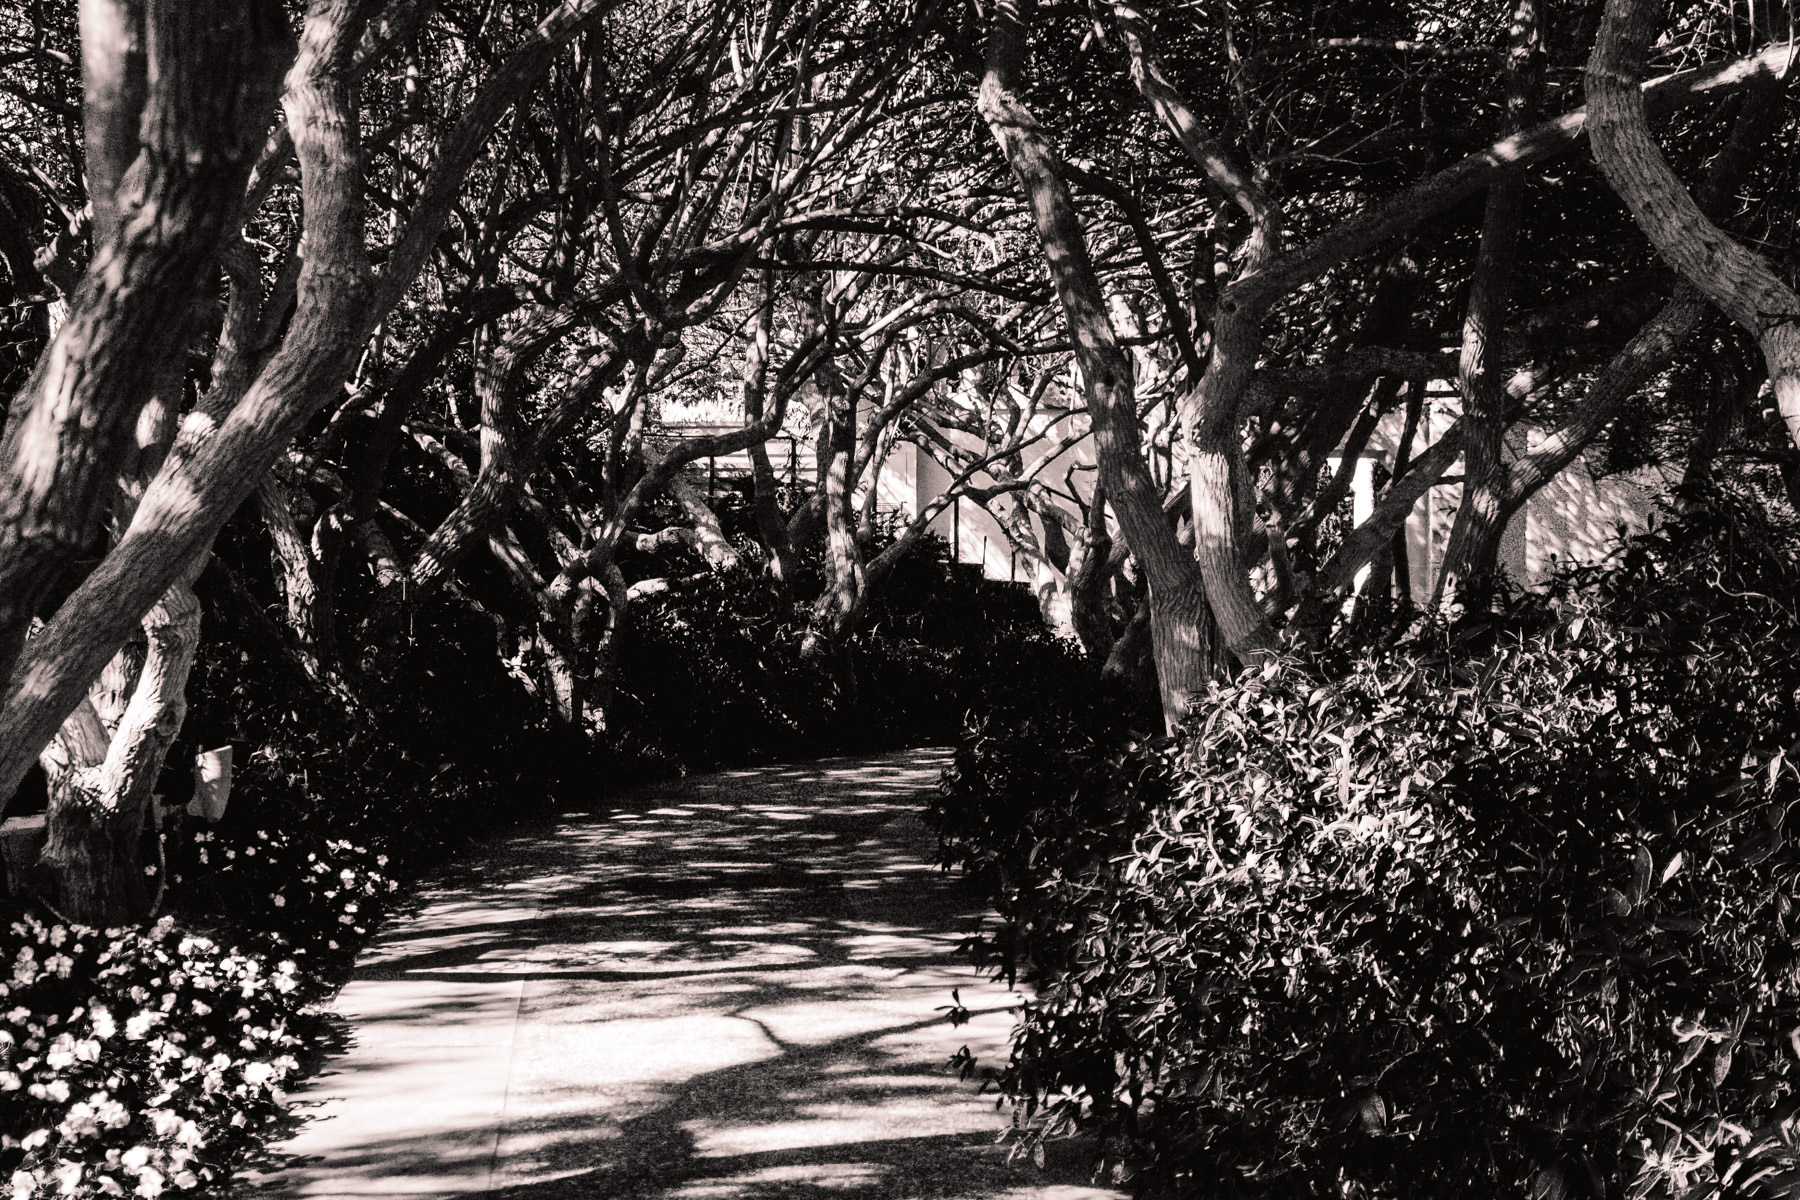 A sidewalk under tree branches at the Dallas Arboretum.